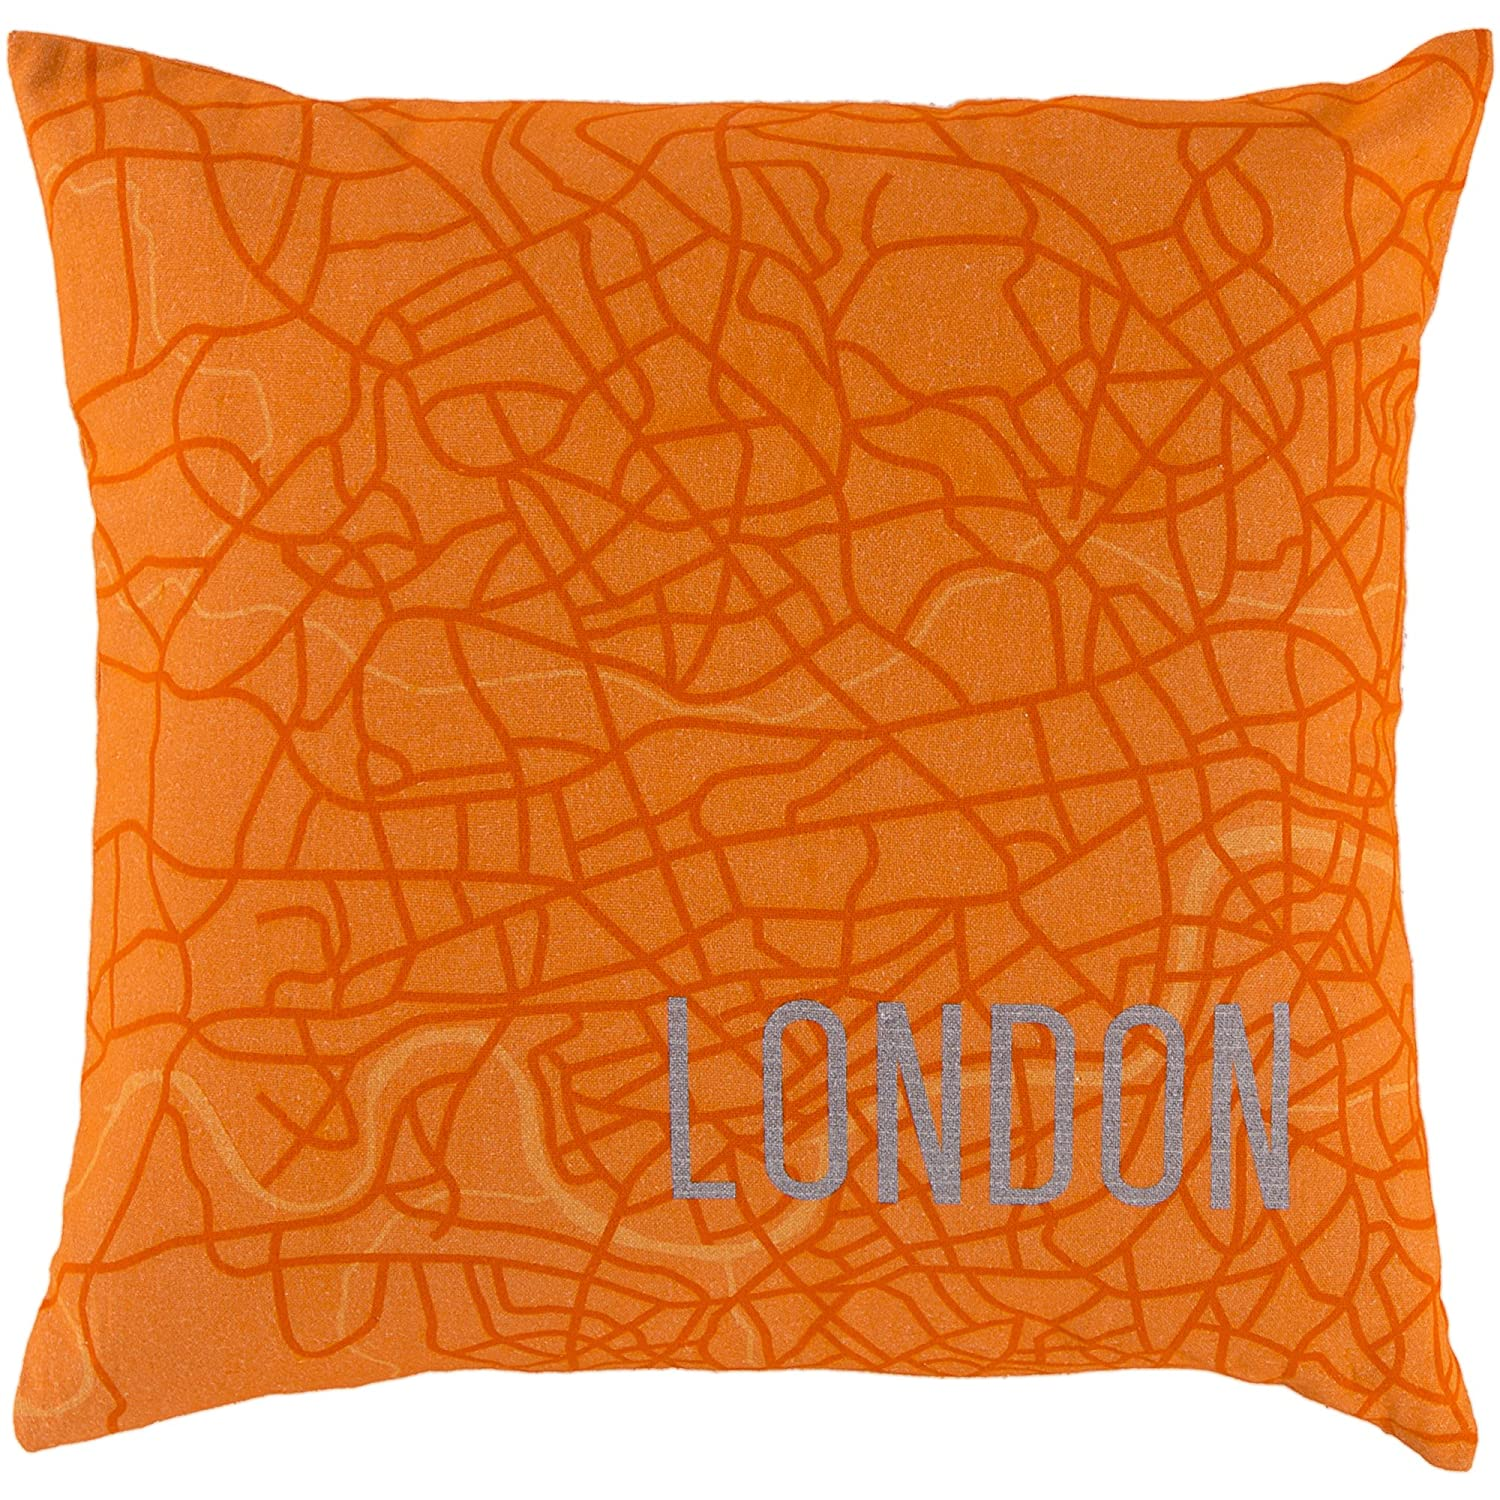 Surya Rug SY019-2222D Square Tangerine Down Feathers Pillow 22 in.   B00H2KCNOC